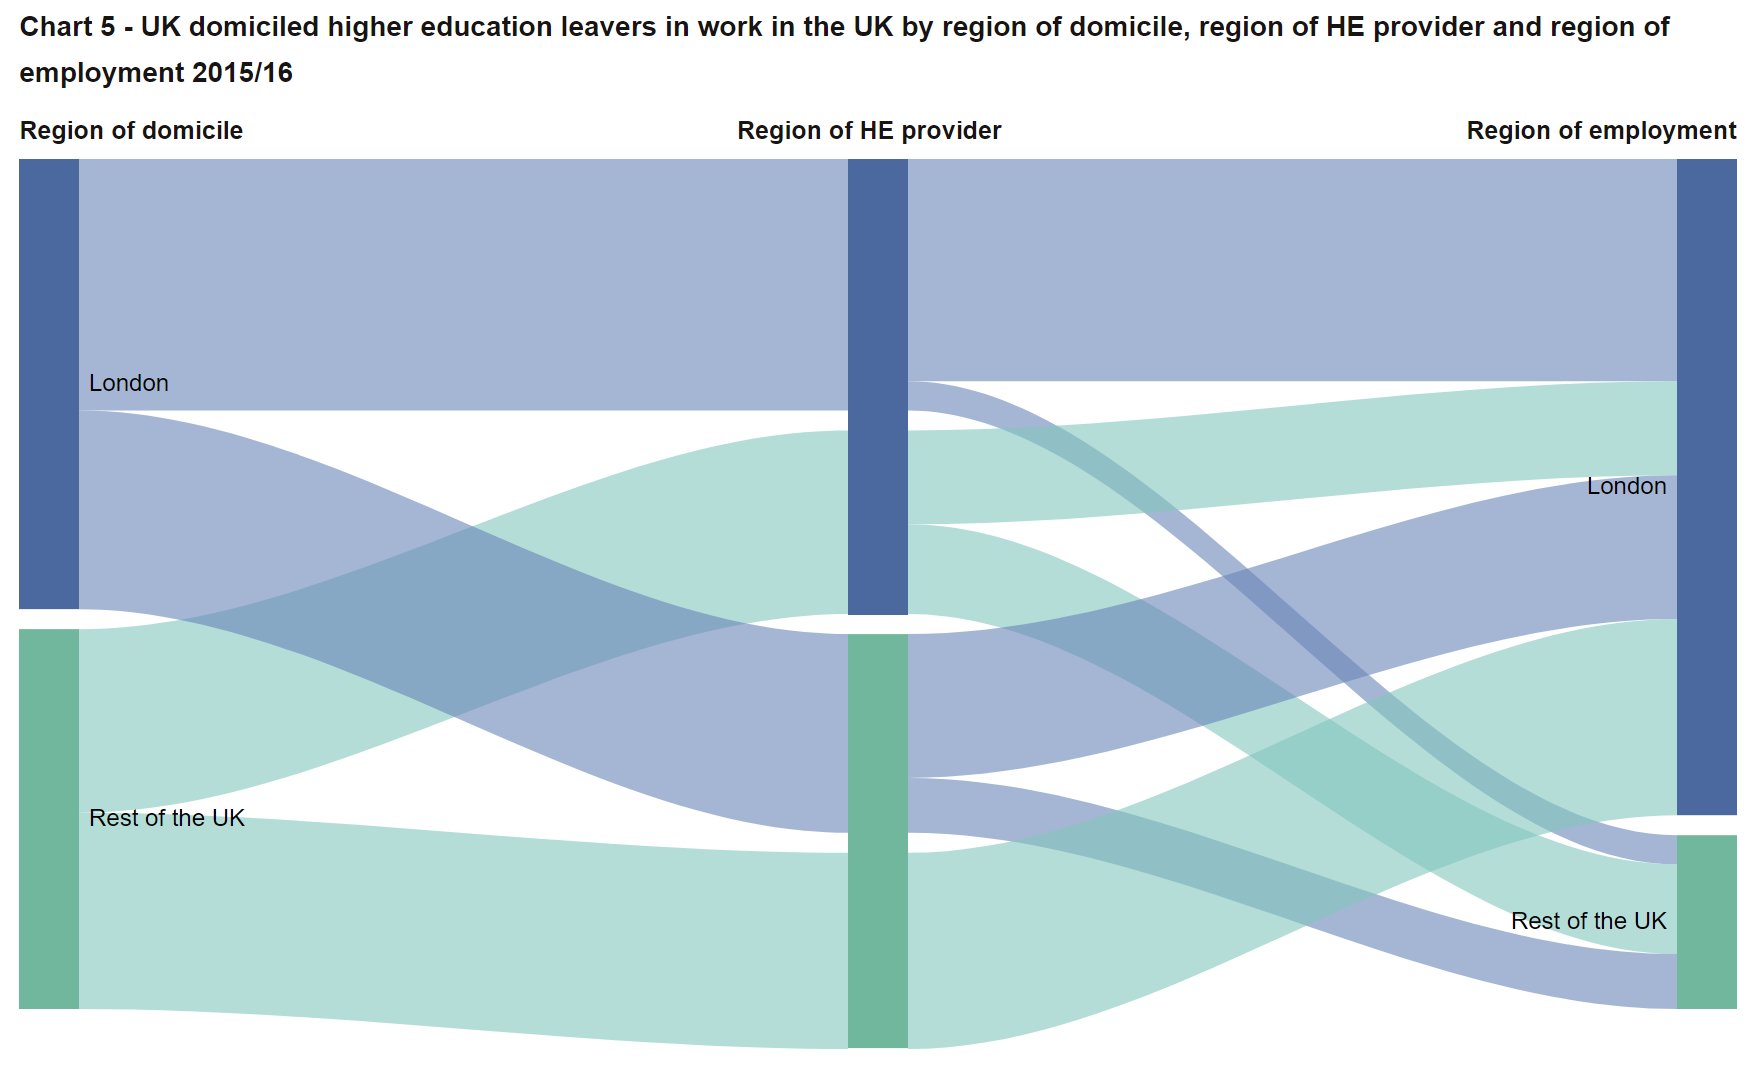 Flow of students and graduates who either originate from, study in or work in London